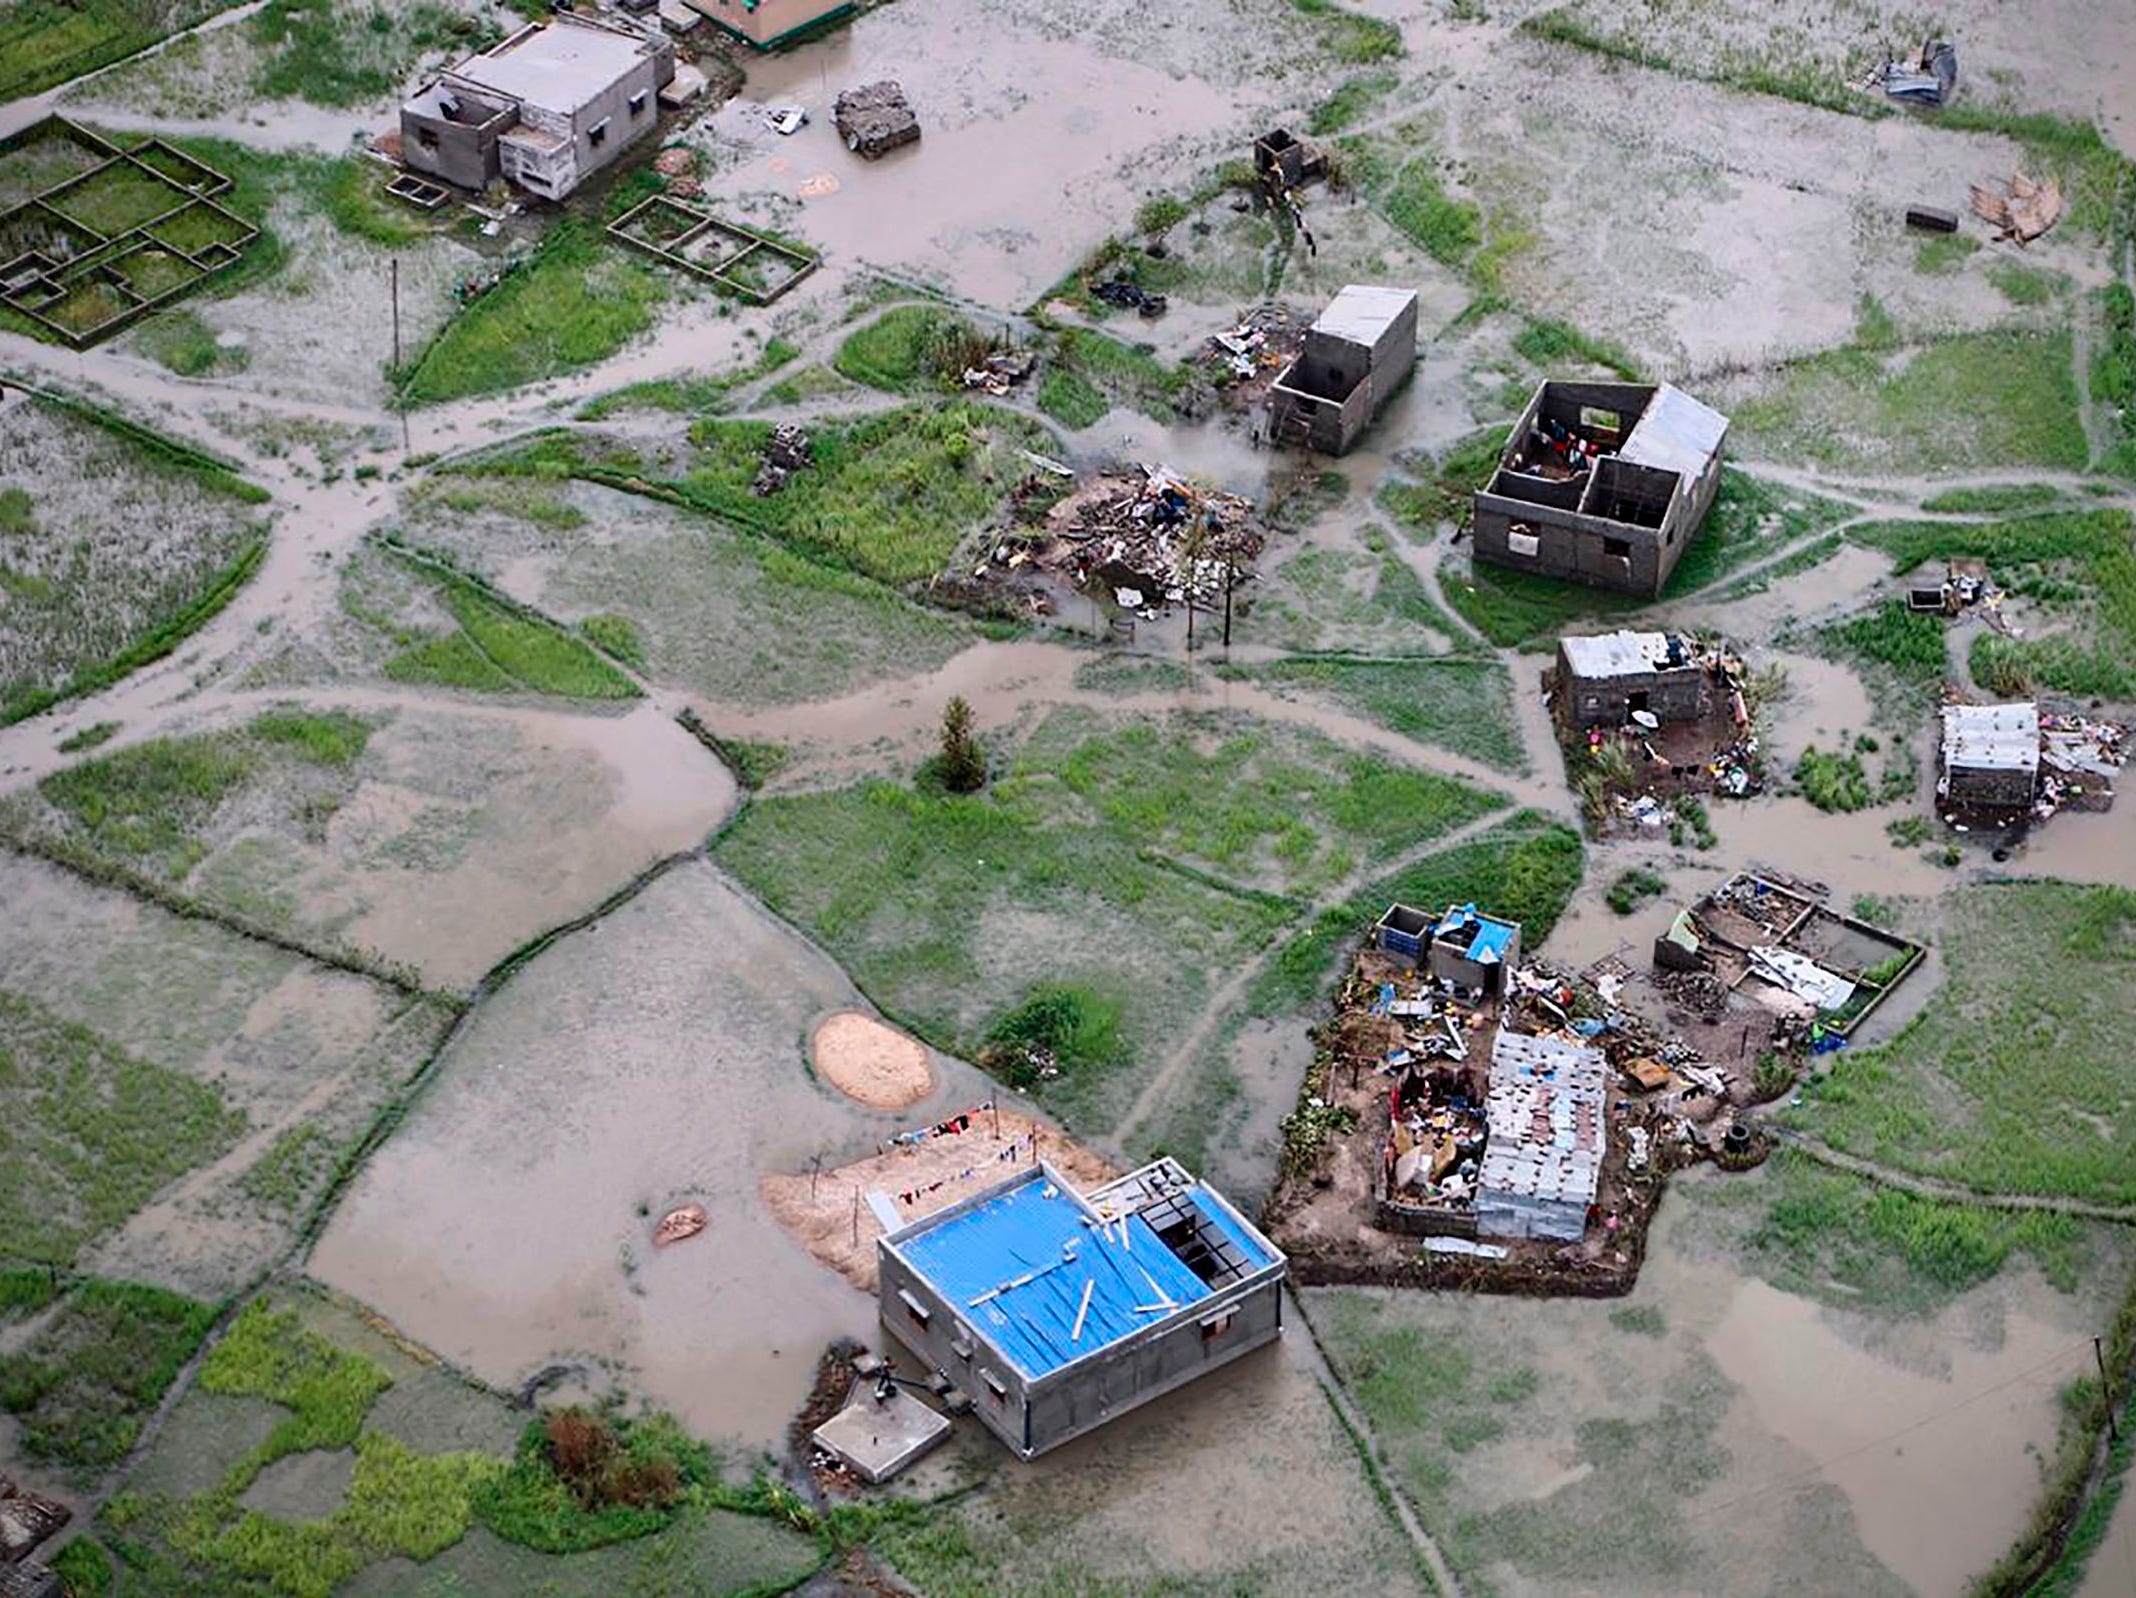 An aerial view a flooded district on the outskirts of the city of Beira, central Mozambique, on March 20, 2019, after Cyclone Idai cut a swathe through Mozambique, Zimbabwe and Malawi. The confirmed death toll stands at more than 300 according to officials. International aid agencies are racing to rescue survivors and meet humanitarian needs in the three countries battered by one of the worst storms to hit southern Africa in decades.